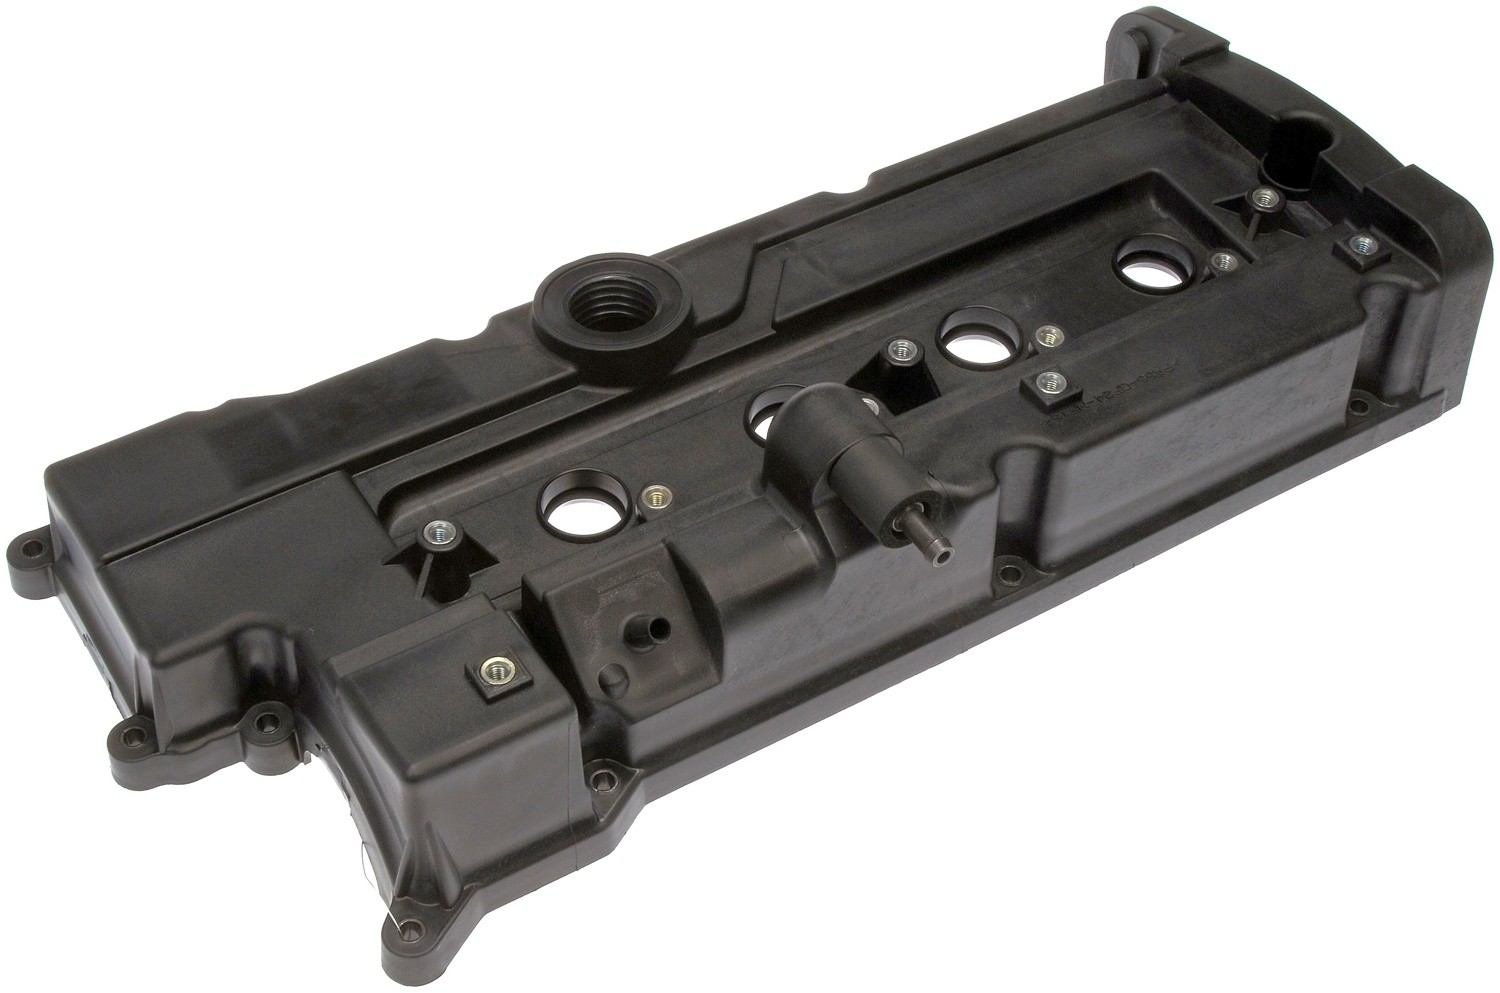 DORMAN OE SOLUTIONS - Engine Valve Cover - DRE 264-990